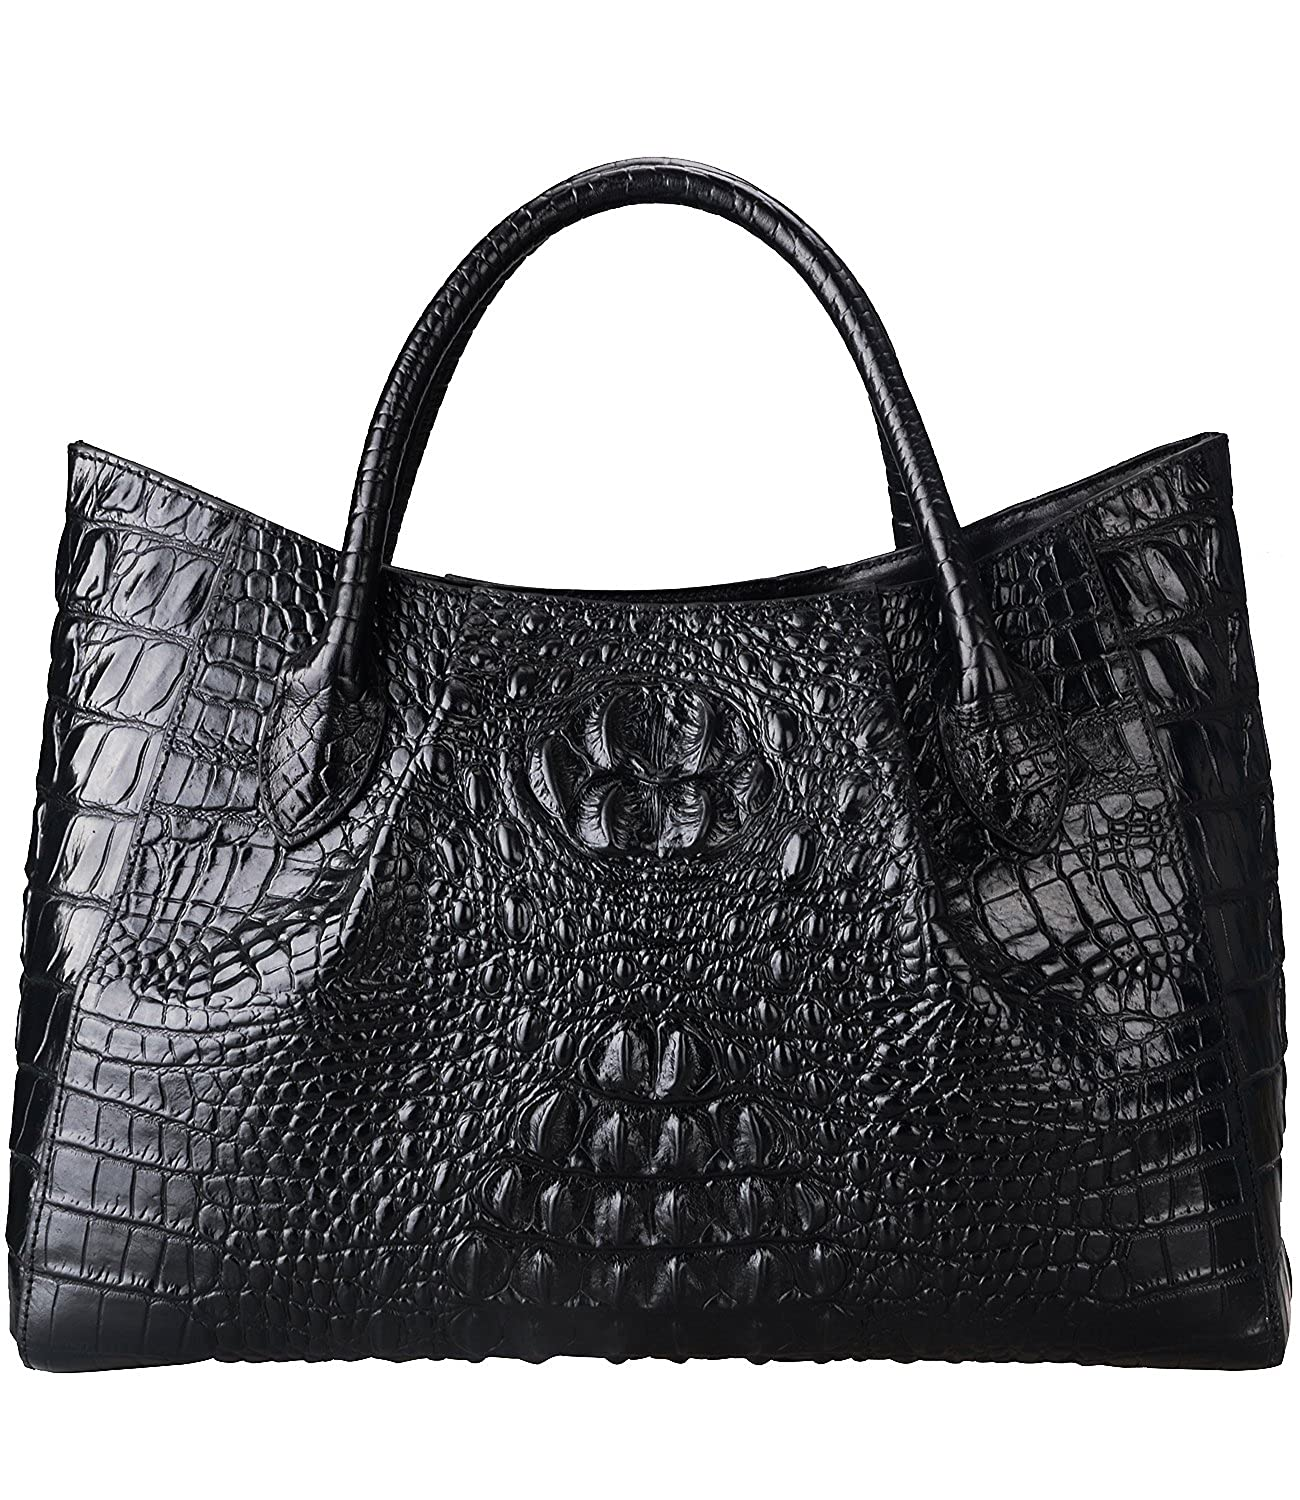 770e19b3bf16 ... Top Handle Bag Designer Satchel Bags For Women. Wholesale Price 189.71.  Imported genuine cow leather. Creative Embossed Crocodile Technology   Import wax ...